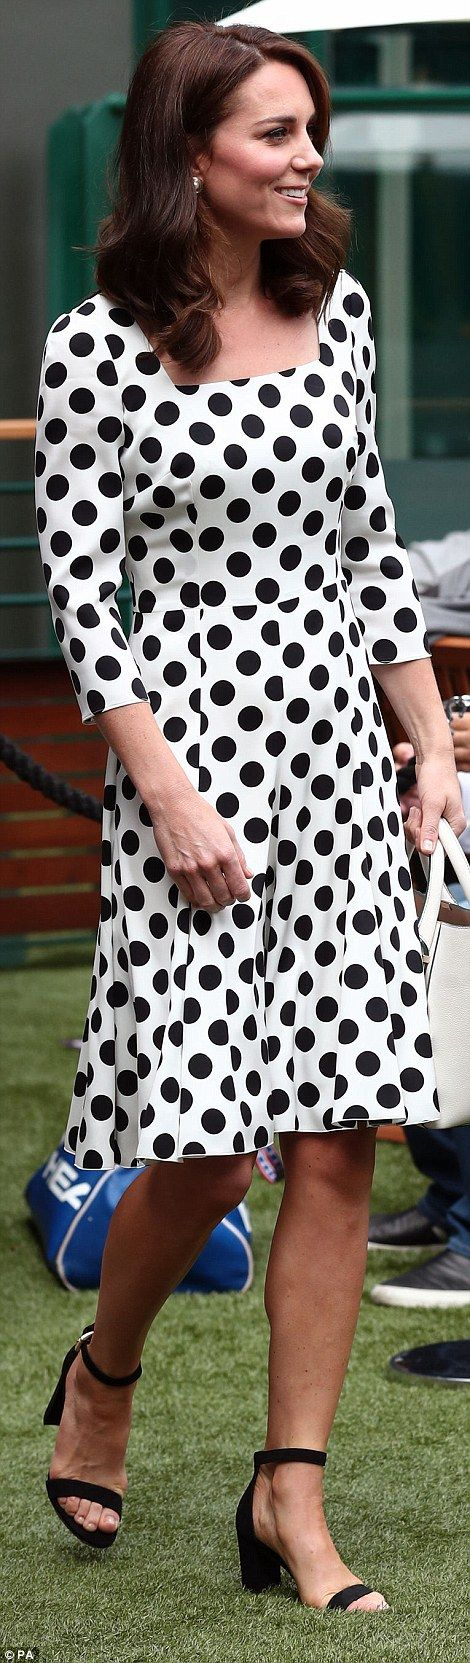 Today she opted for more fashion-forward strappy sandals to complement her polka dots